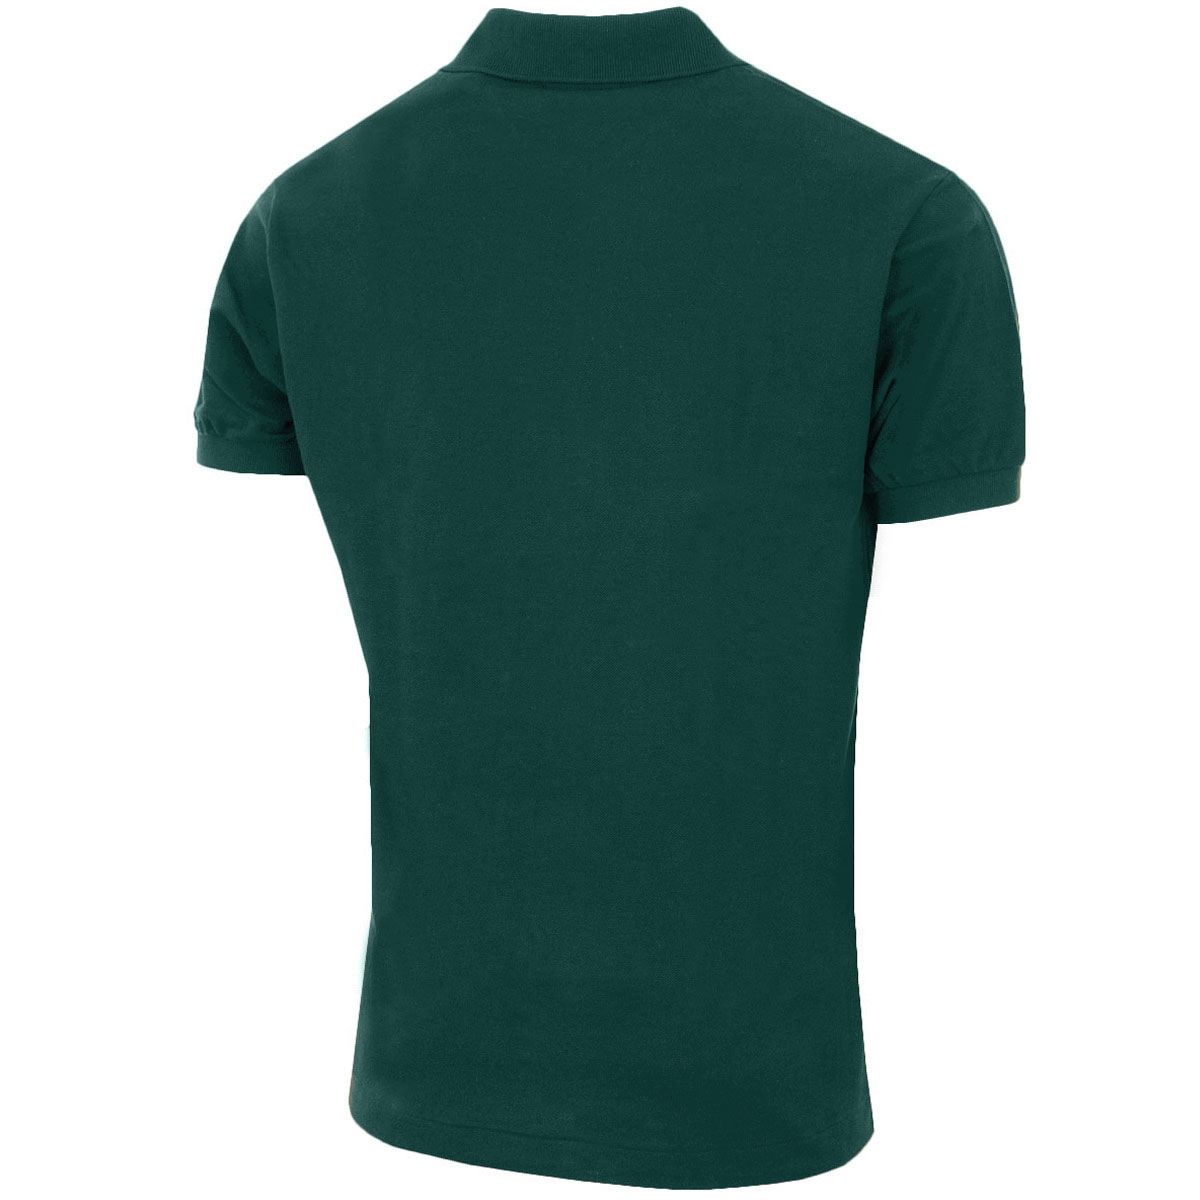 Lacoste-Mens-Classic-Cotton-L1212-Short-Sleeve-Polo-Shirt-26-OFF-RRP thumbnail 3